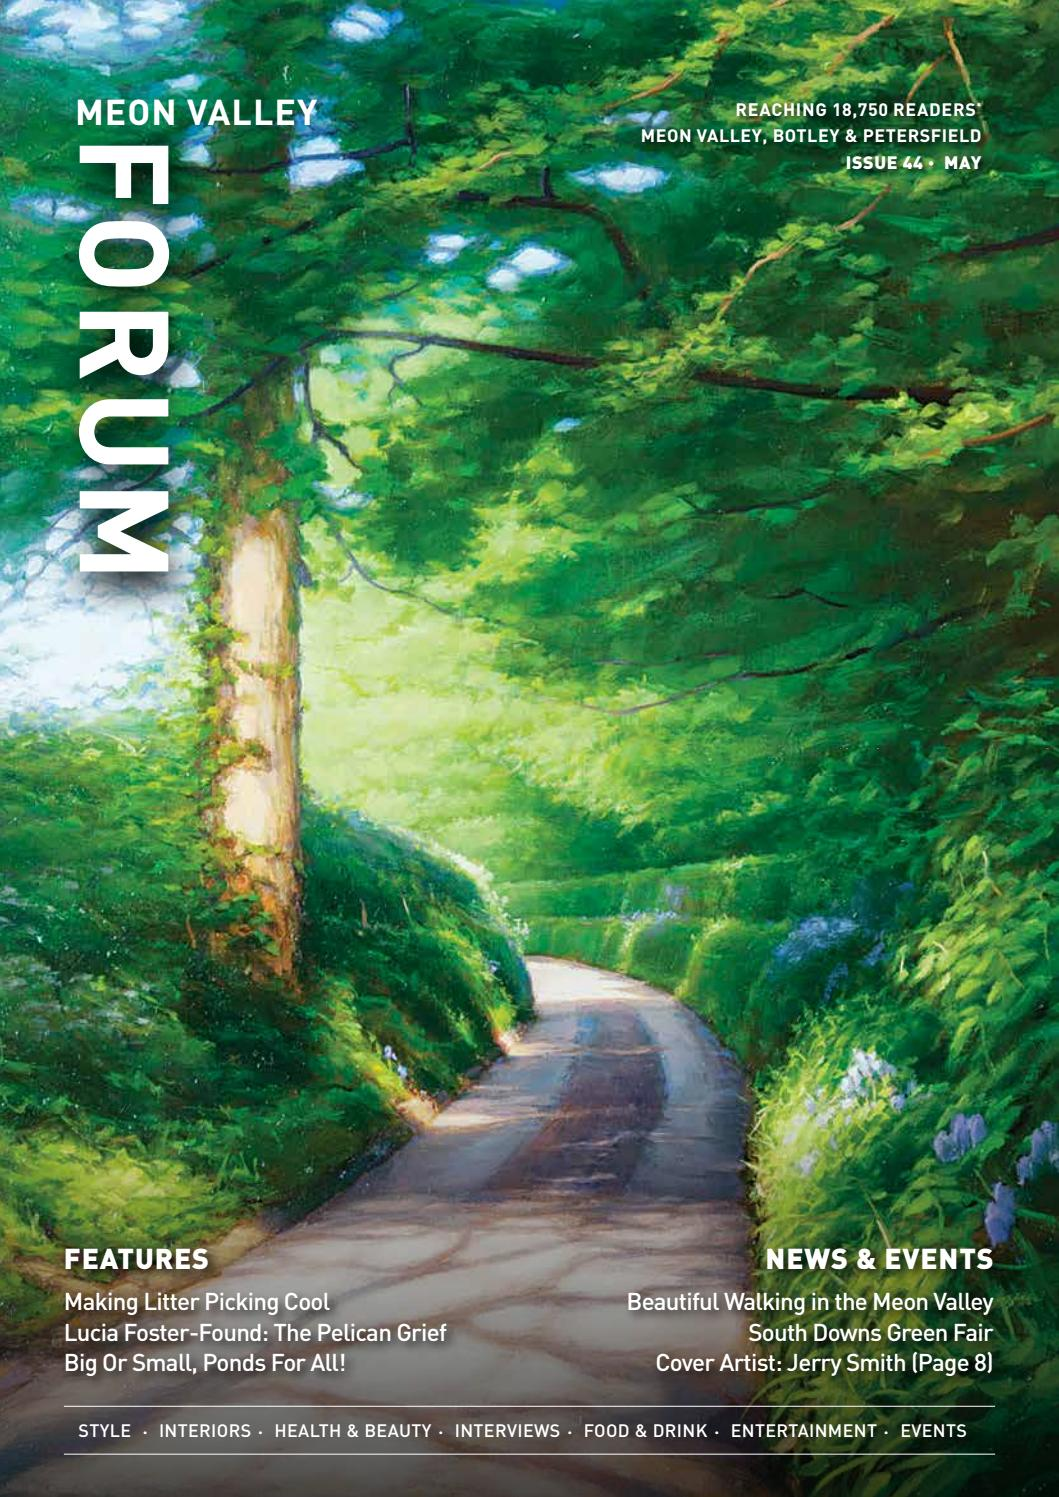 Meon Valley Forum Issue 44 - May by Mark Tubb - issuu